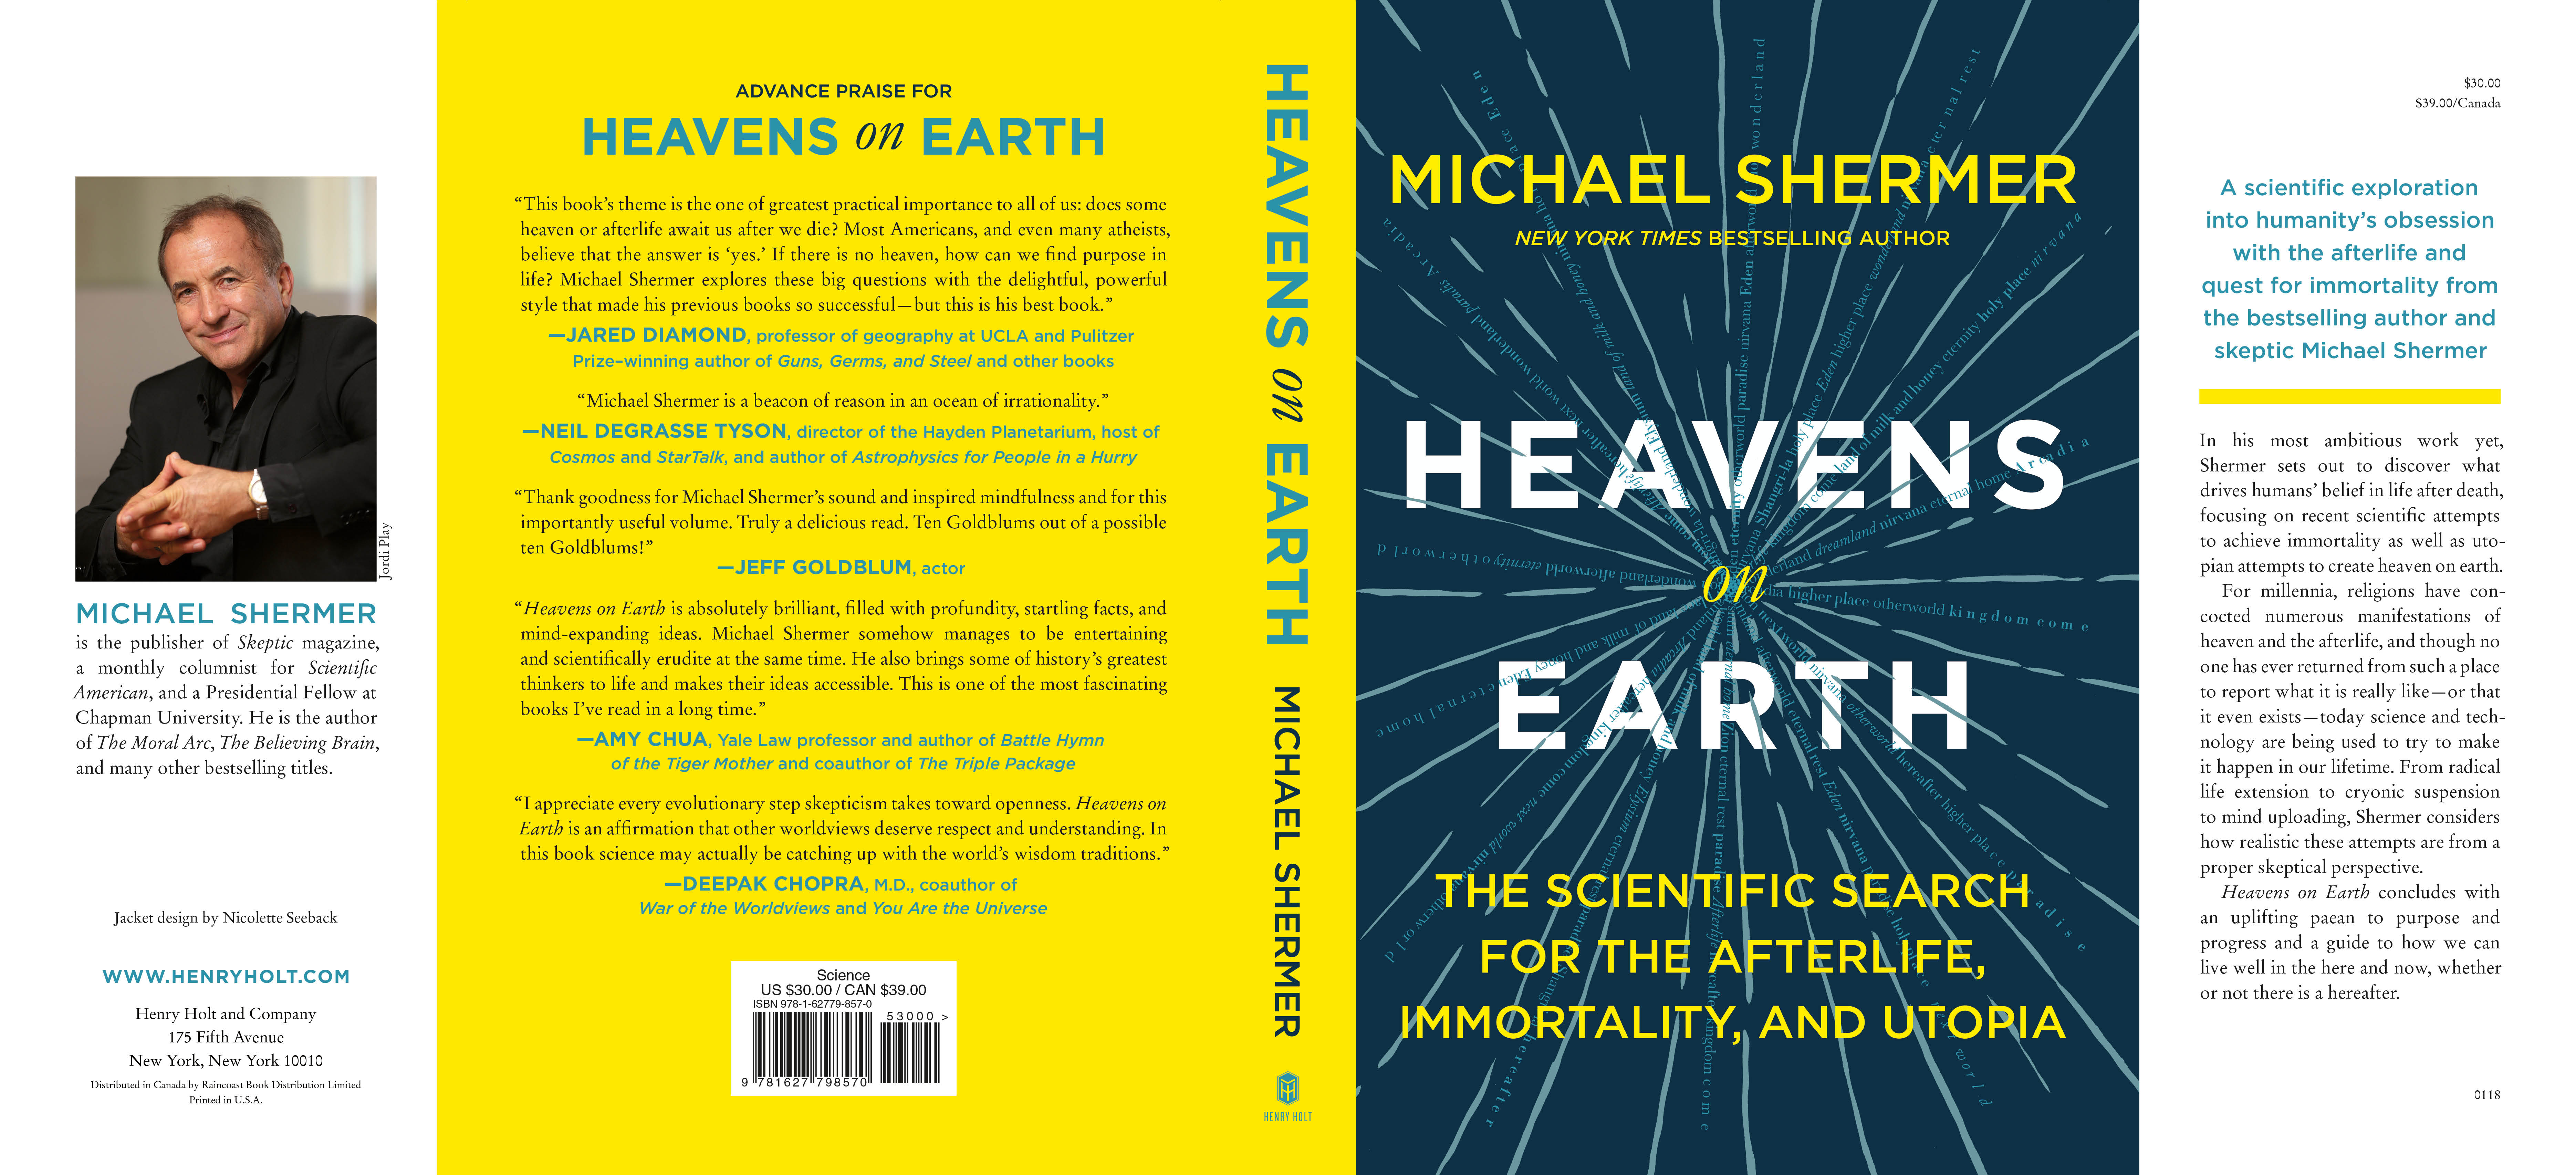 Artwork for Michael Shermer-- Heavens On Earth: The Scientific Search for the Afterlife, Immortality, and Utopia